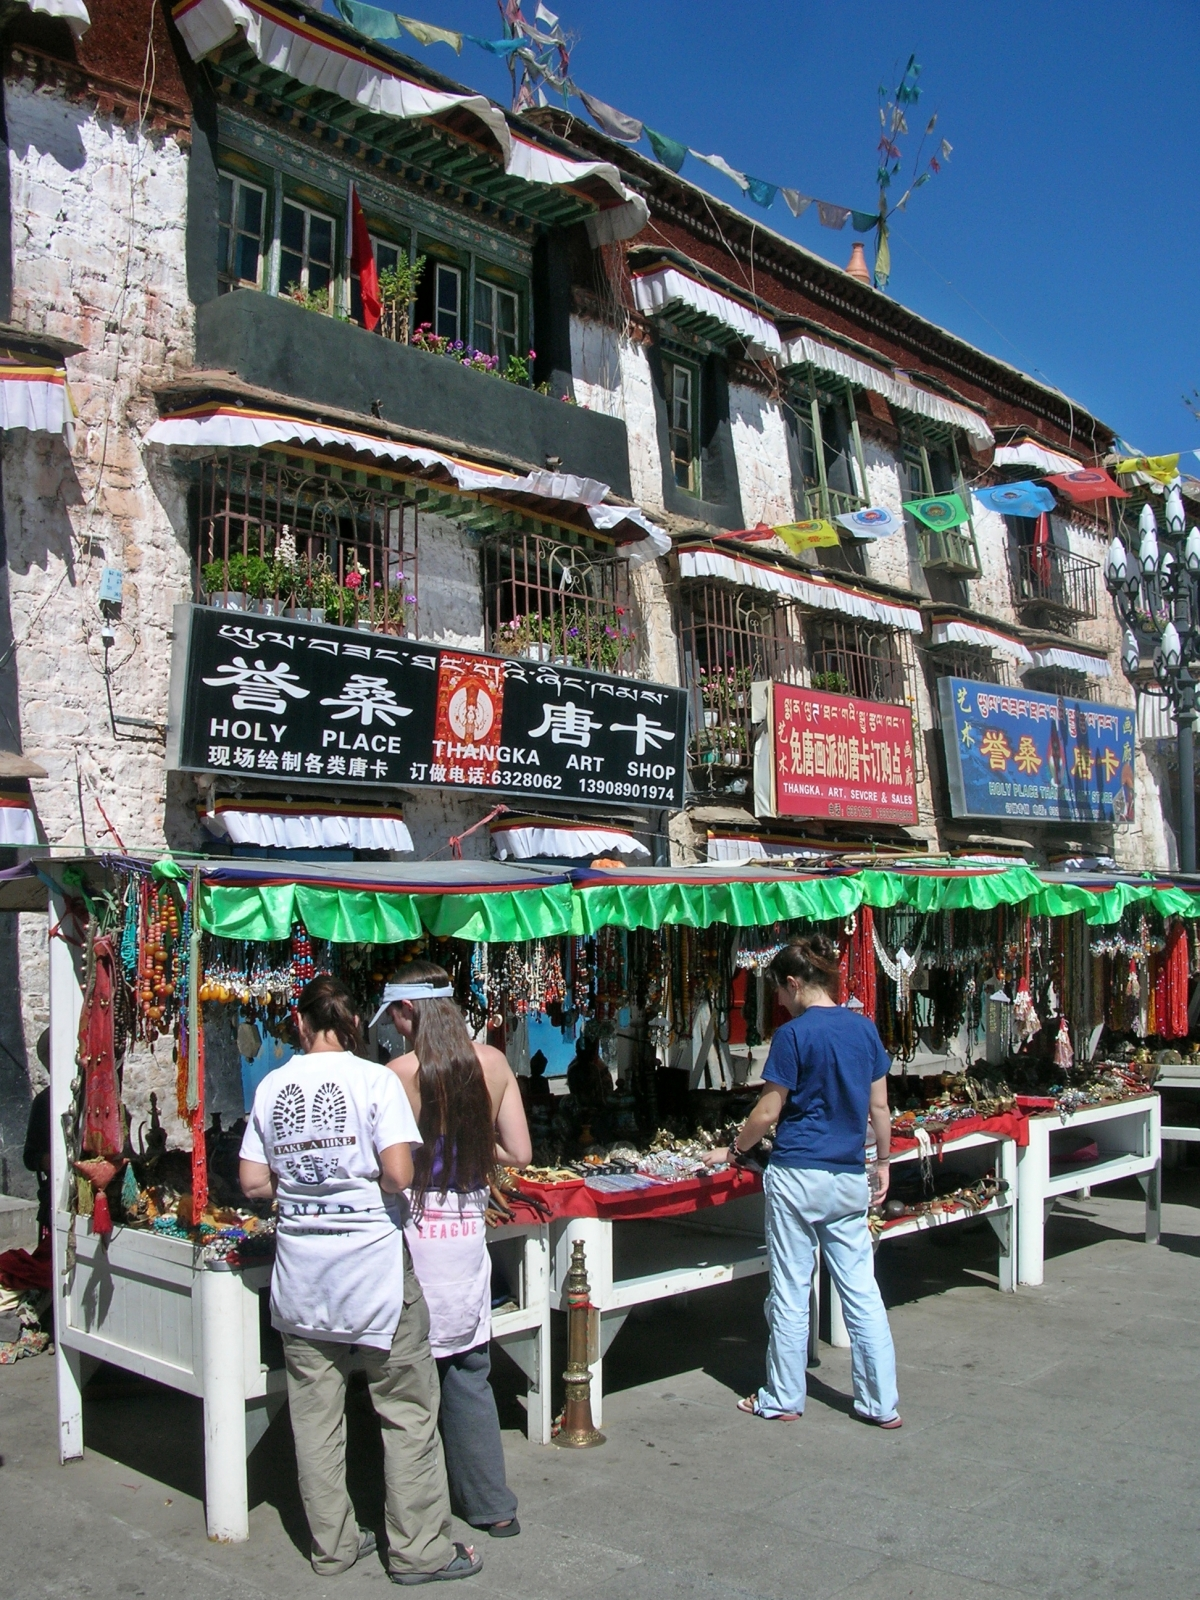 street shopping in Tibet. Backpacks and Bra Straps